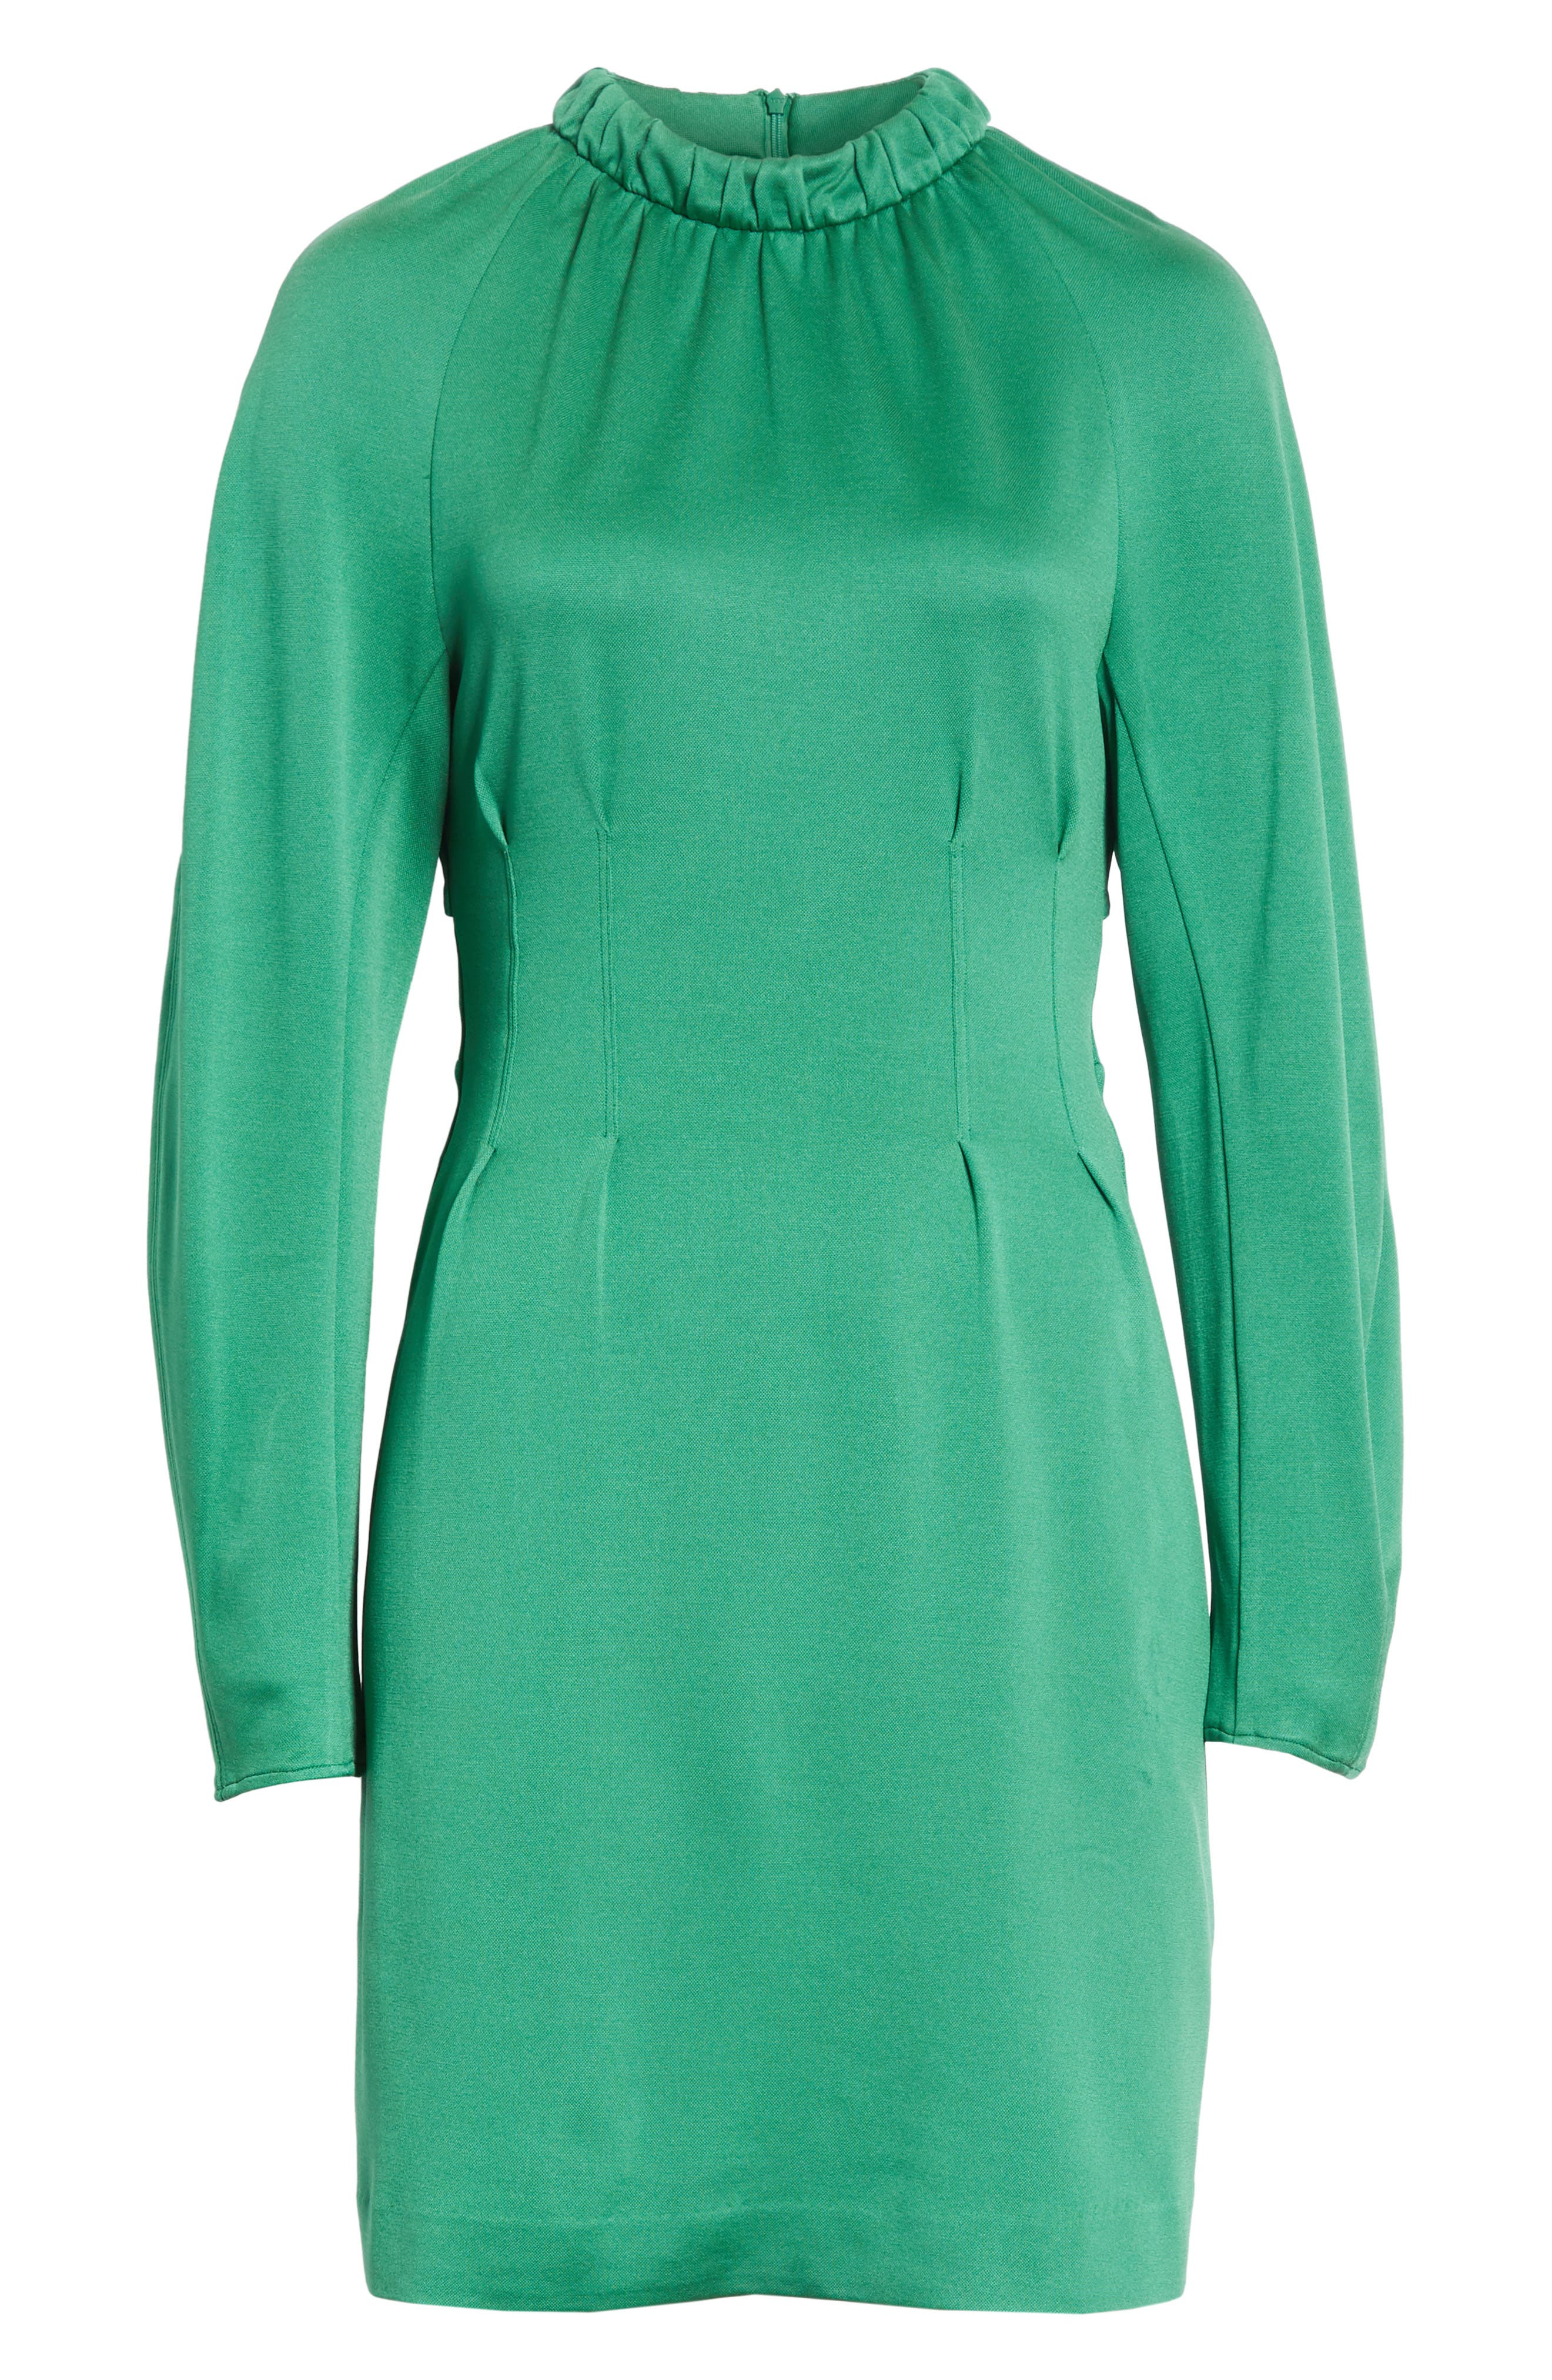 Astor Knit Sheath Dress,                             Alternate thumbnail 6, color,                             Green